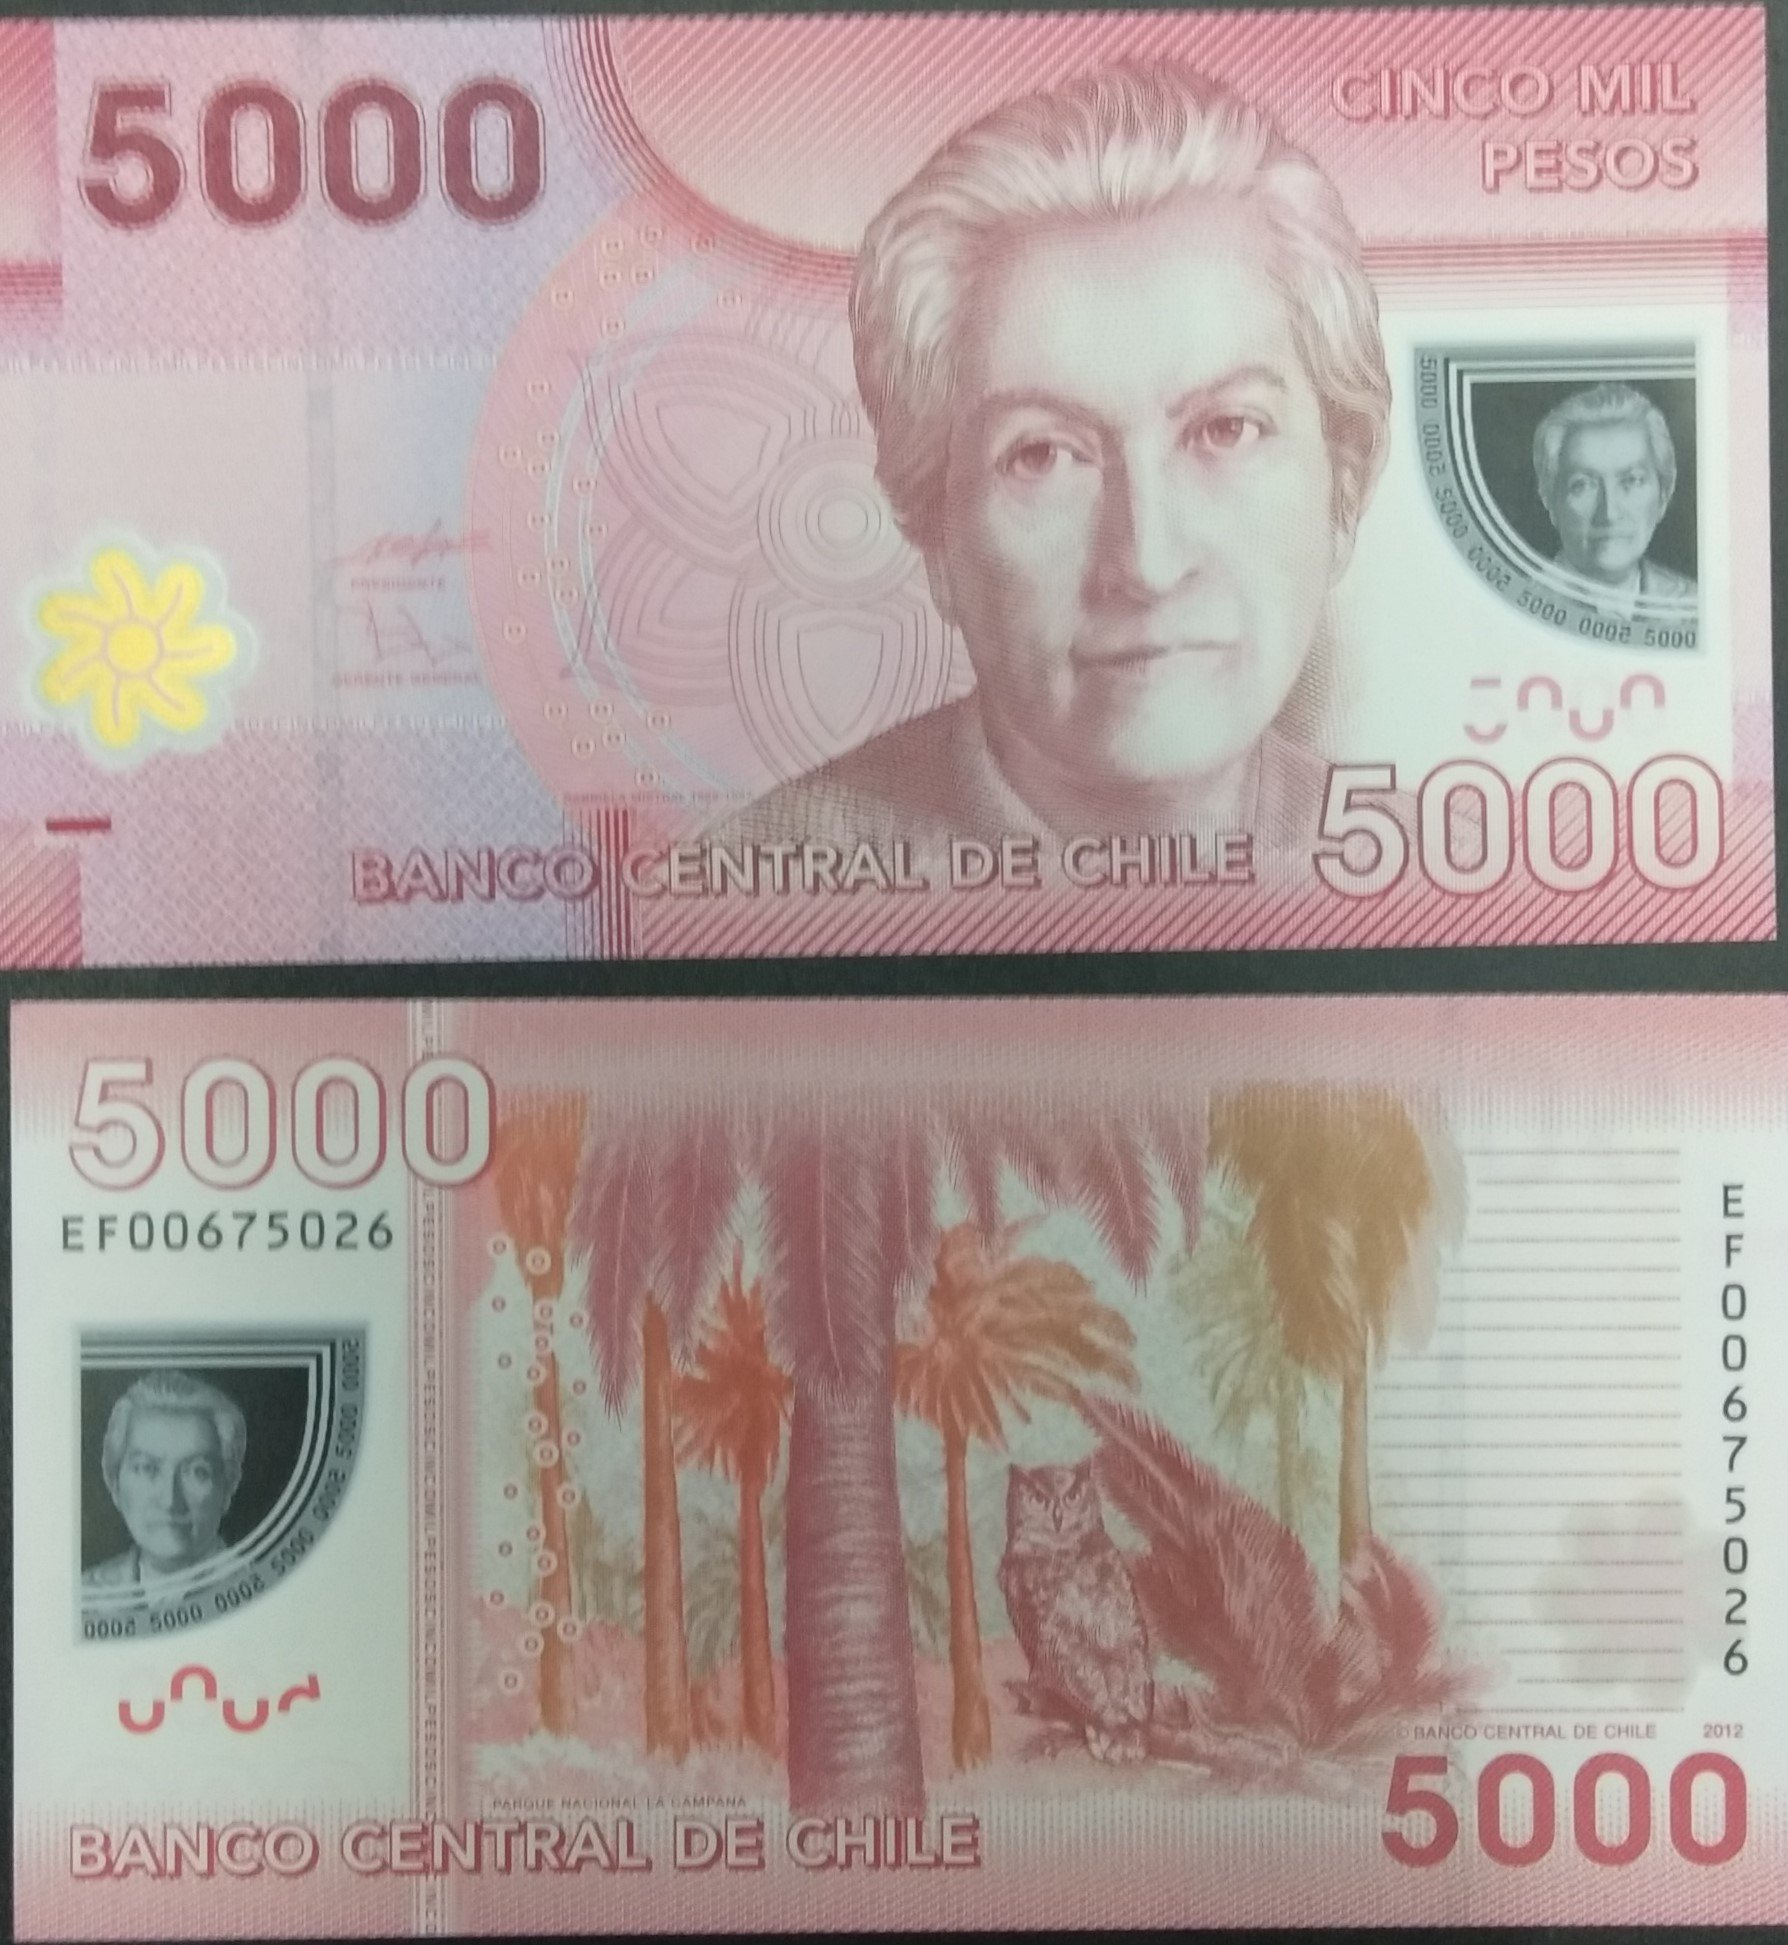 Chile 5000 pesos polymer banknote for sale